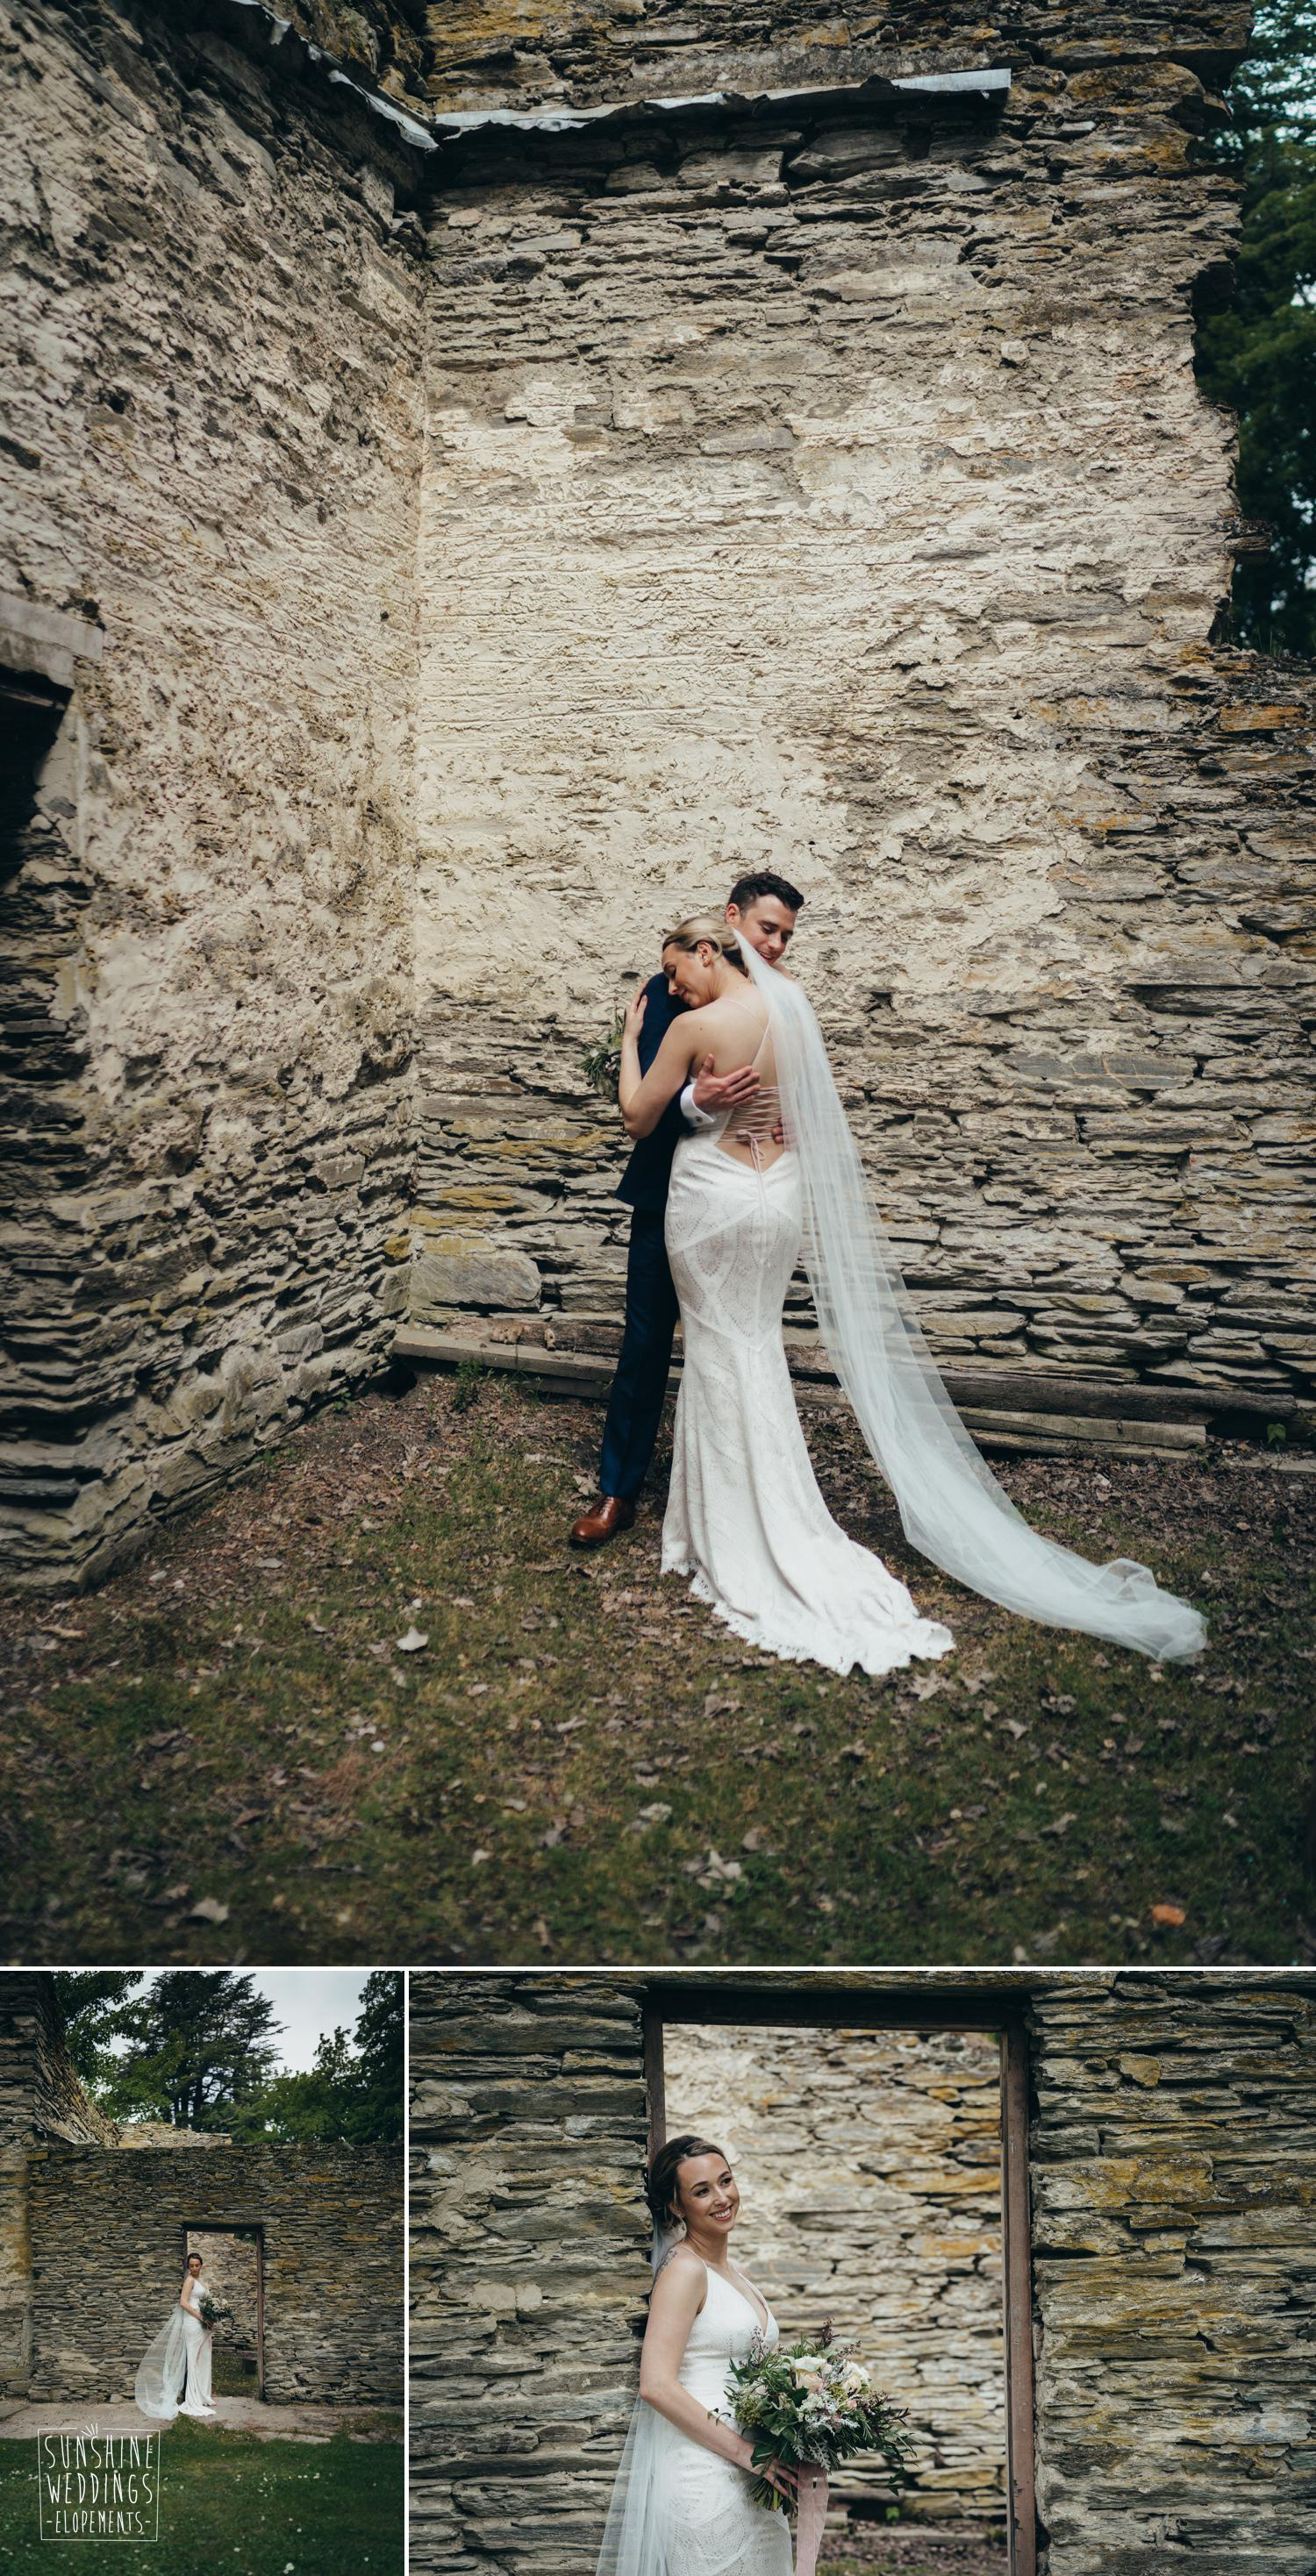 Elopement Thurlby wedding planner